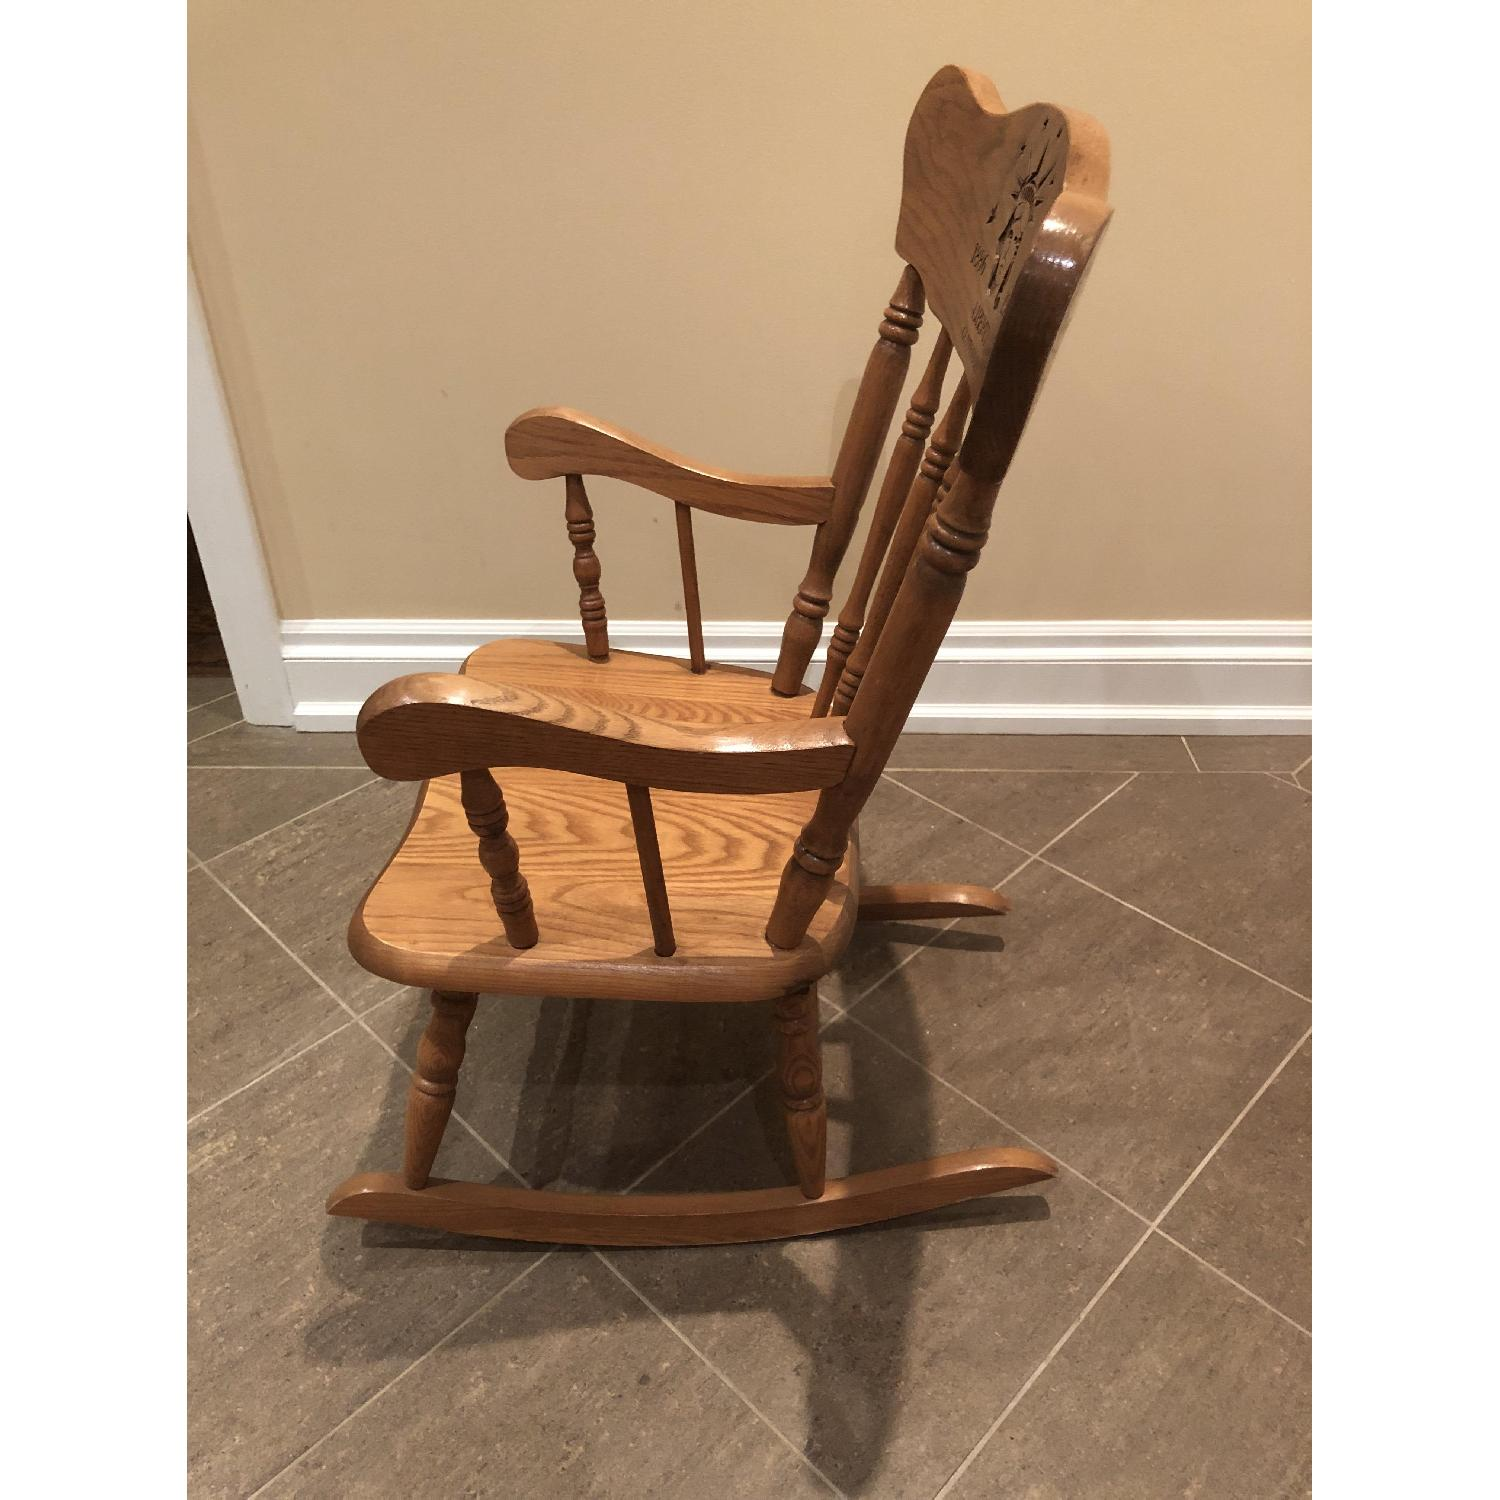 Hedstrom Childs Wooden Rocking Chair - image-1